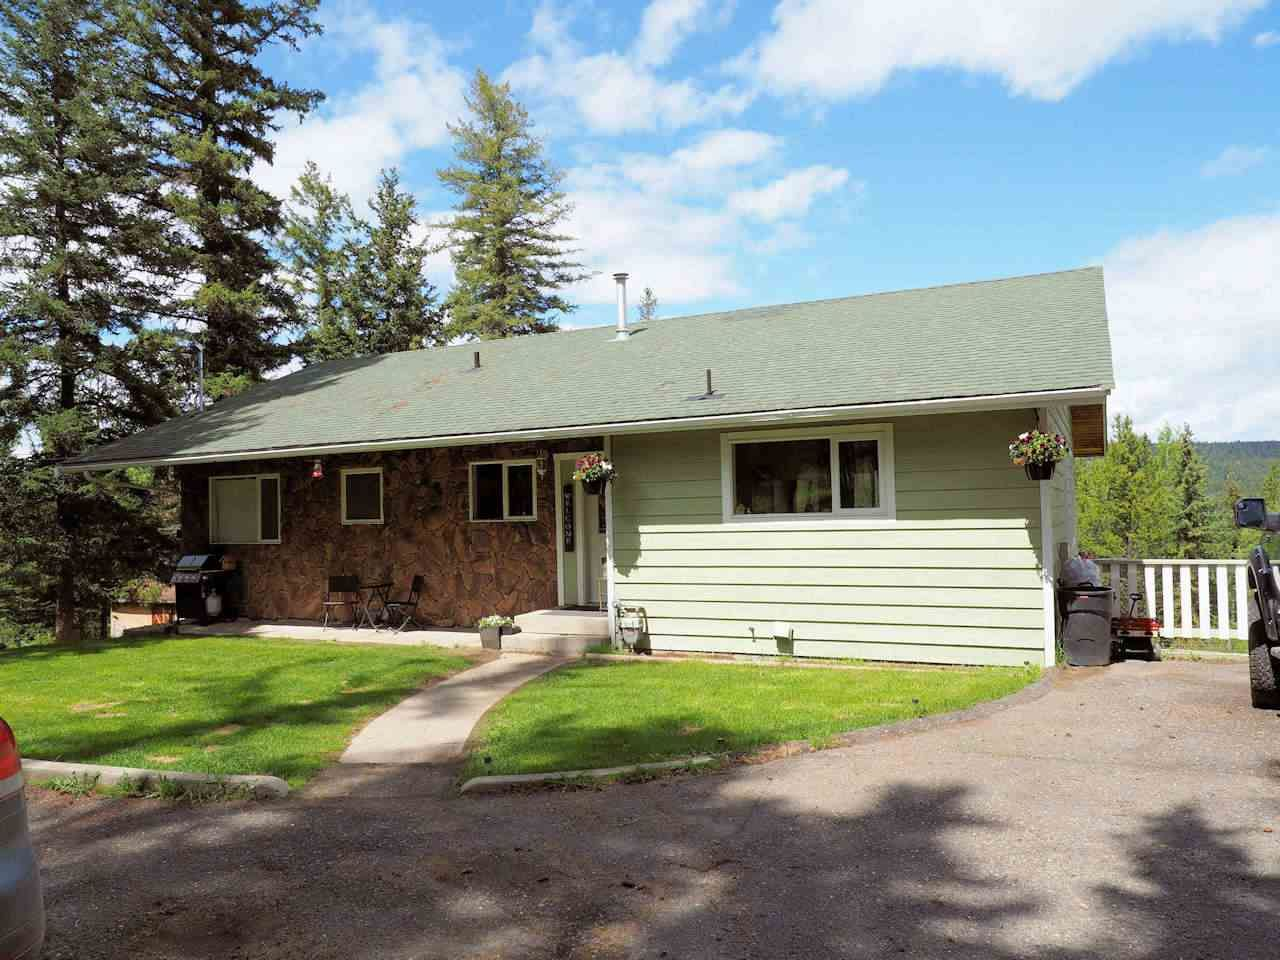 Main Photo: 6017 TOOMEY Road: Horse Lake House for sale (100 Mile House (Zone 10))  : MLS®# R2462195